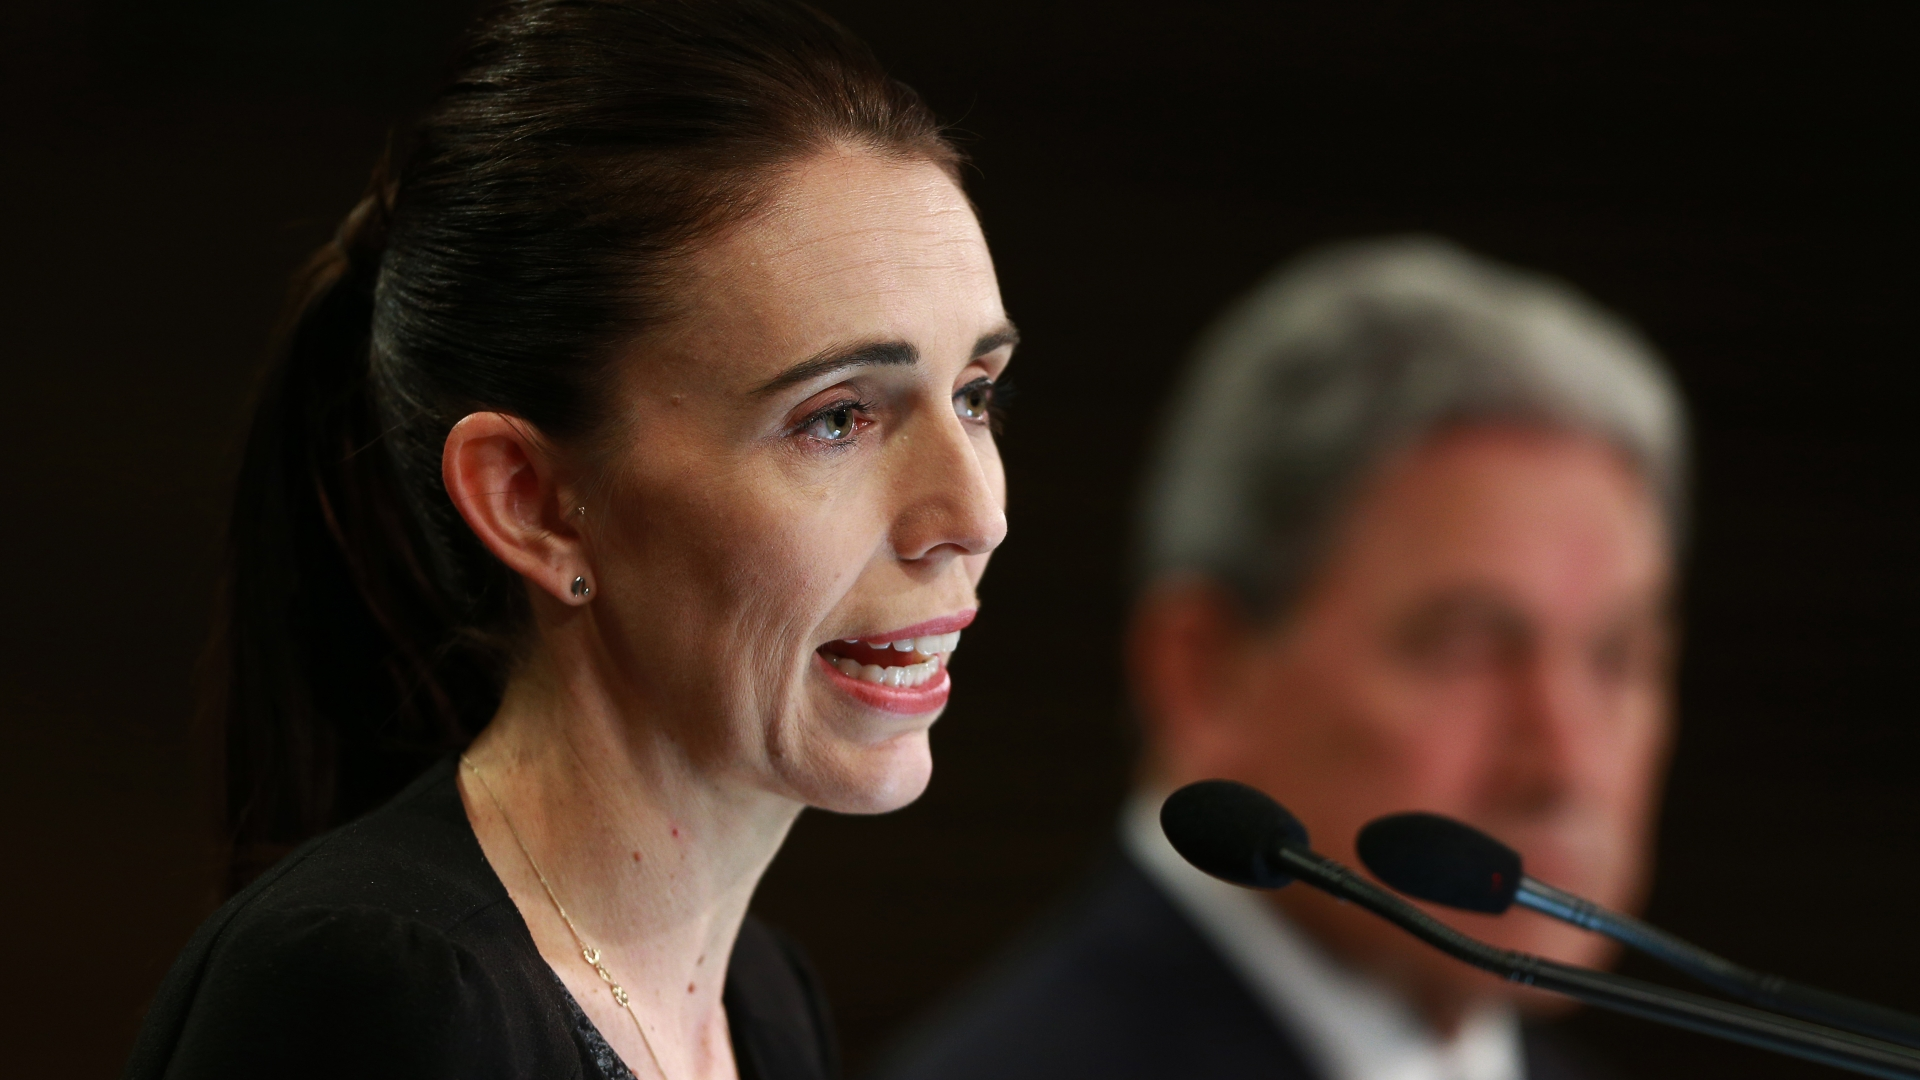 New Zealand shooting: Prime minister says gun reforms are coming